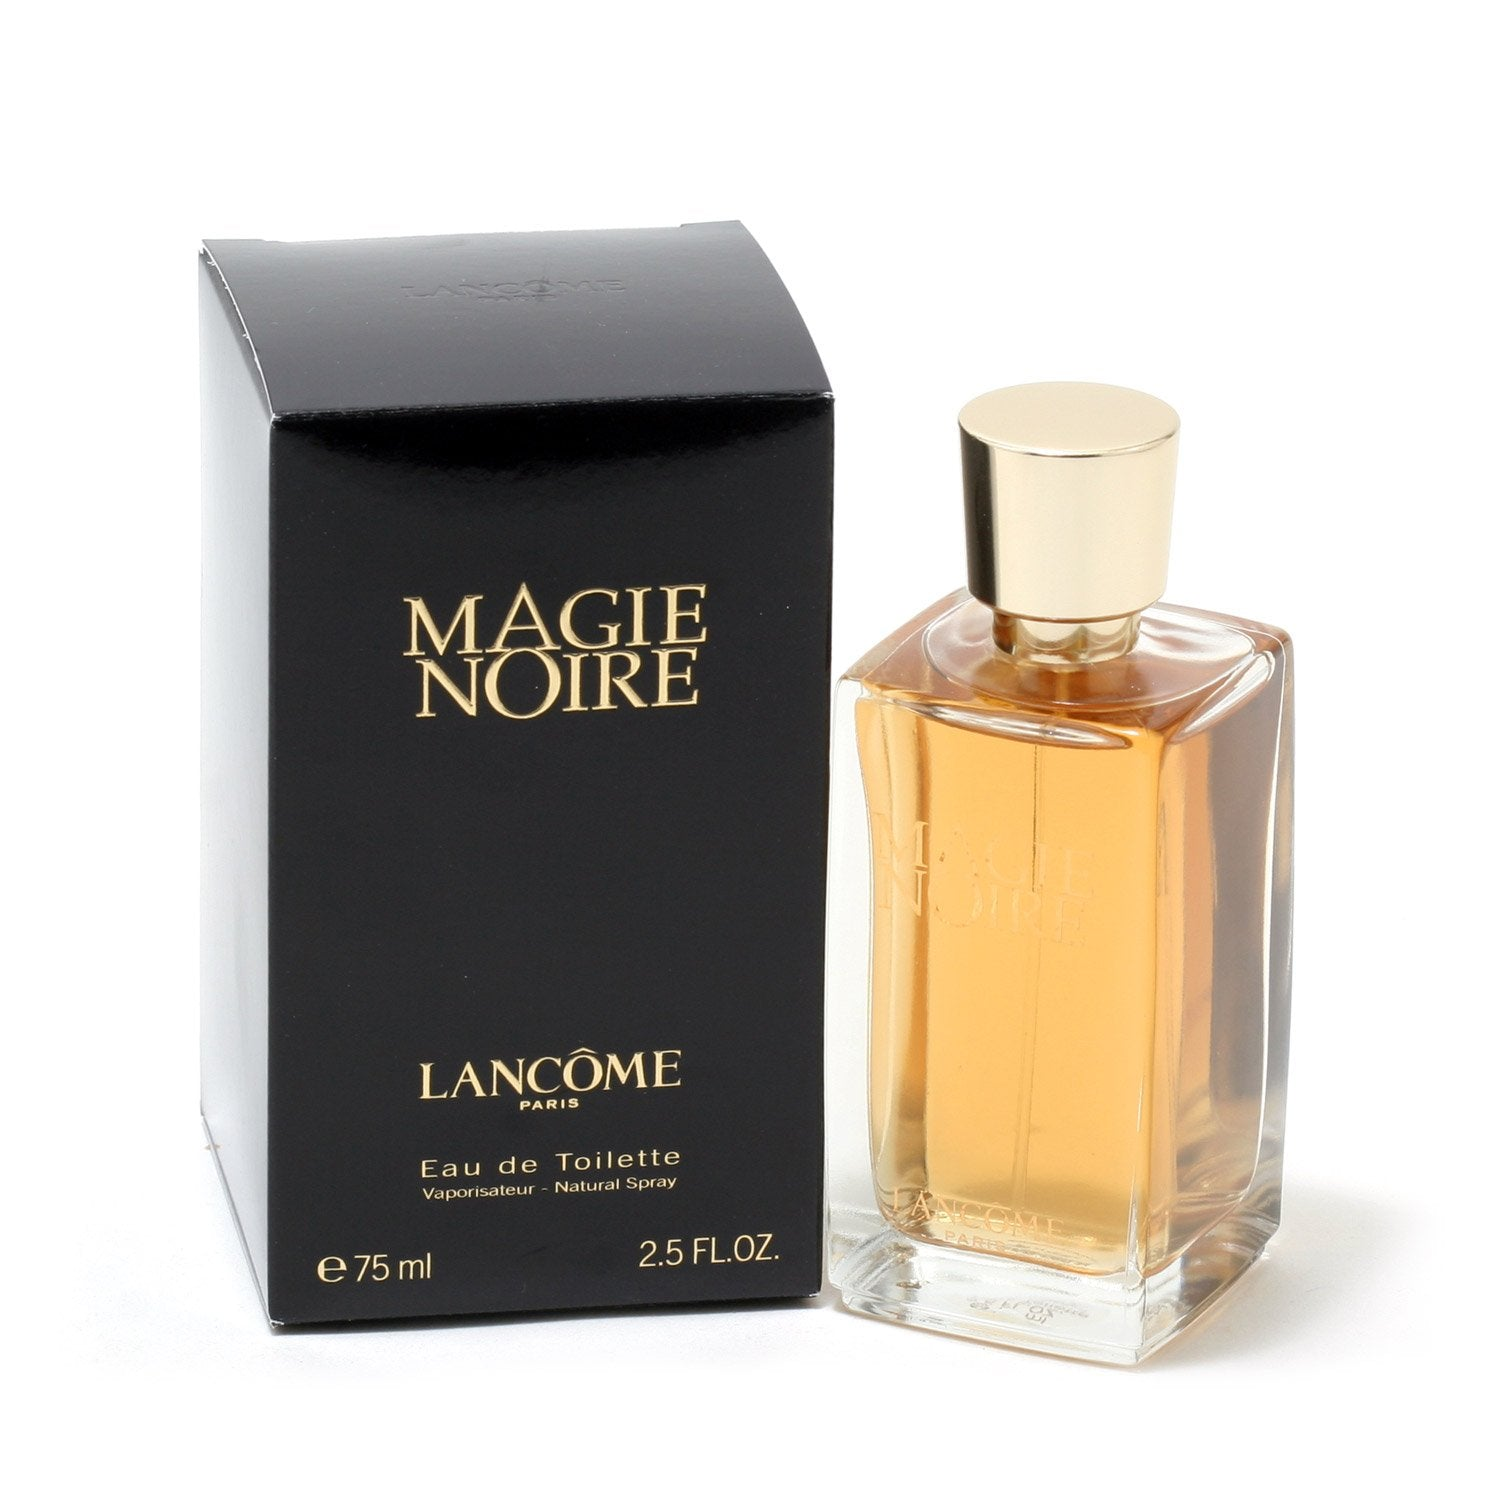 Perfume - MAGIE NOIRE FOR WOMEN BY LANCOME - EAU DE TOILETTE SPRAY, 2.5 OZ